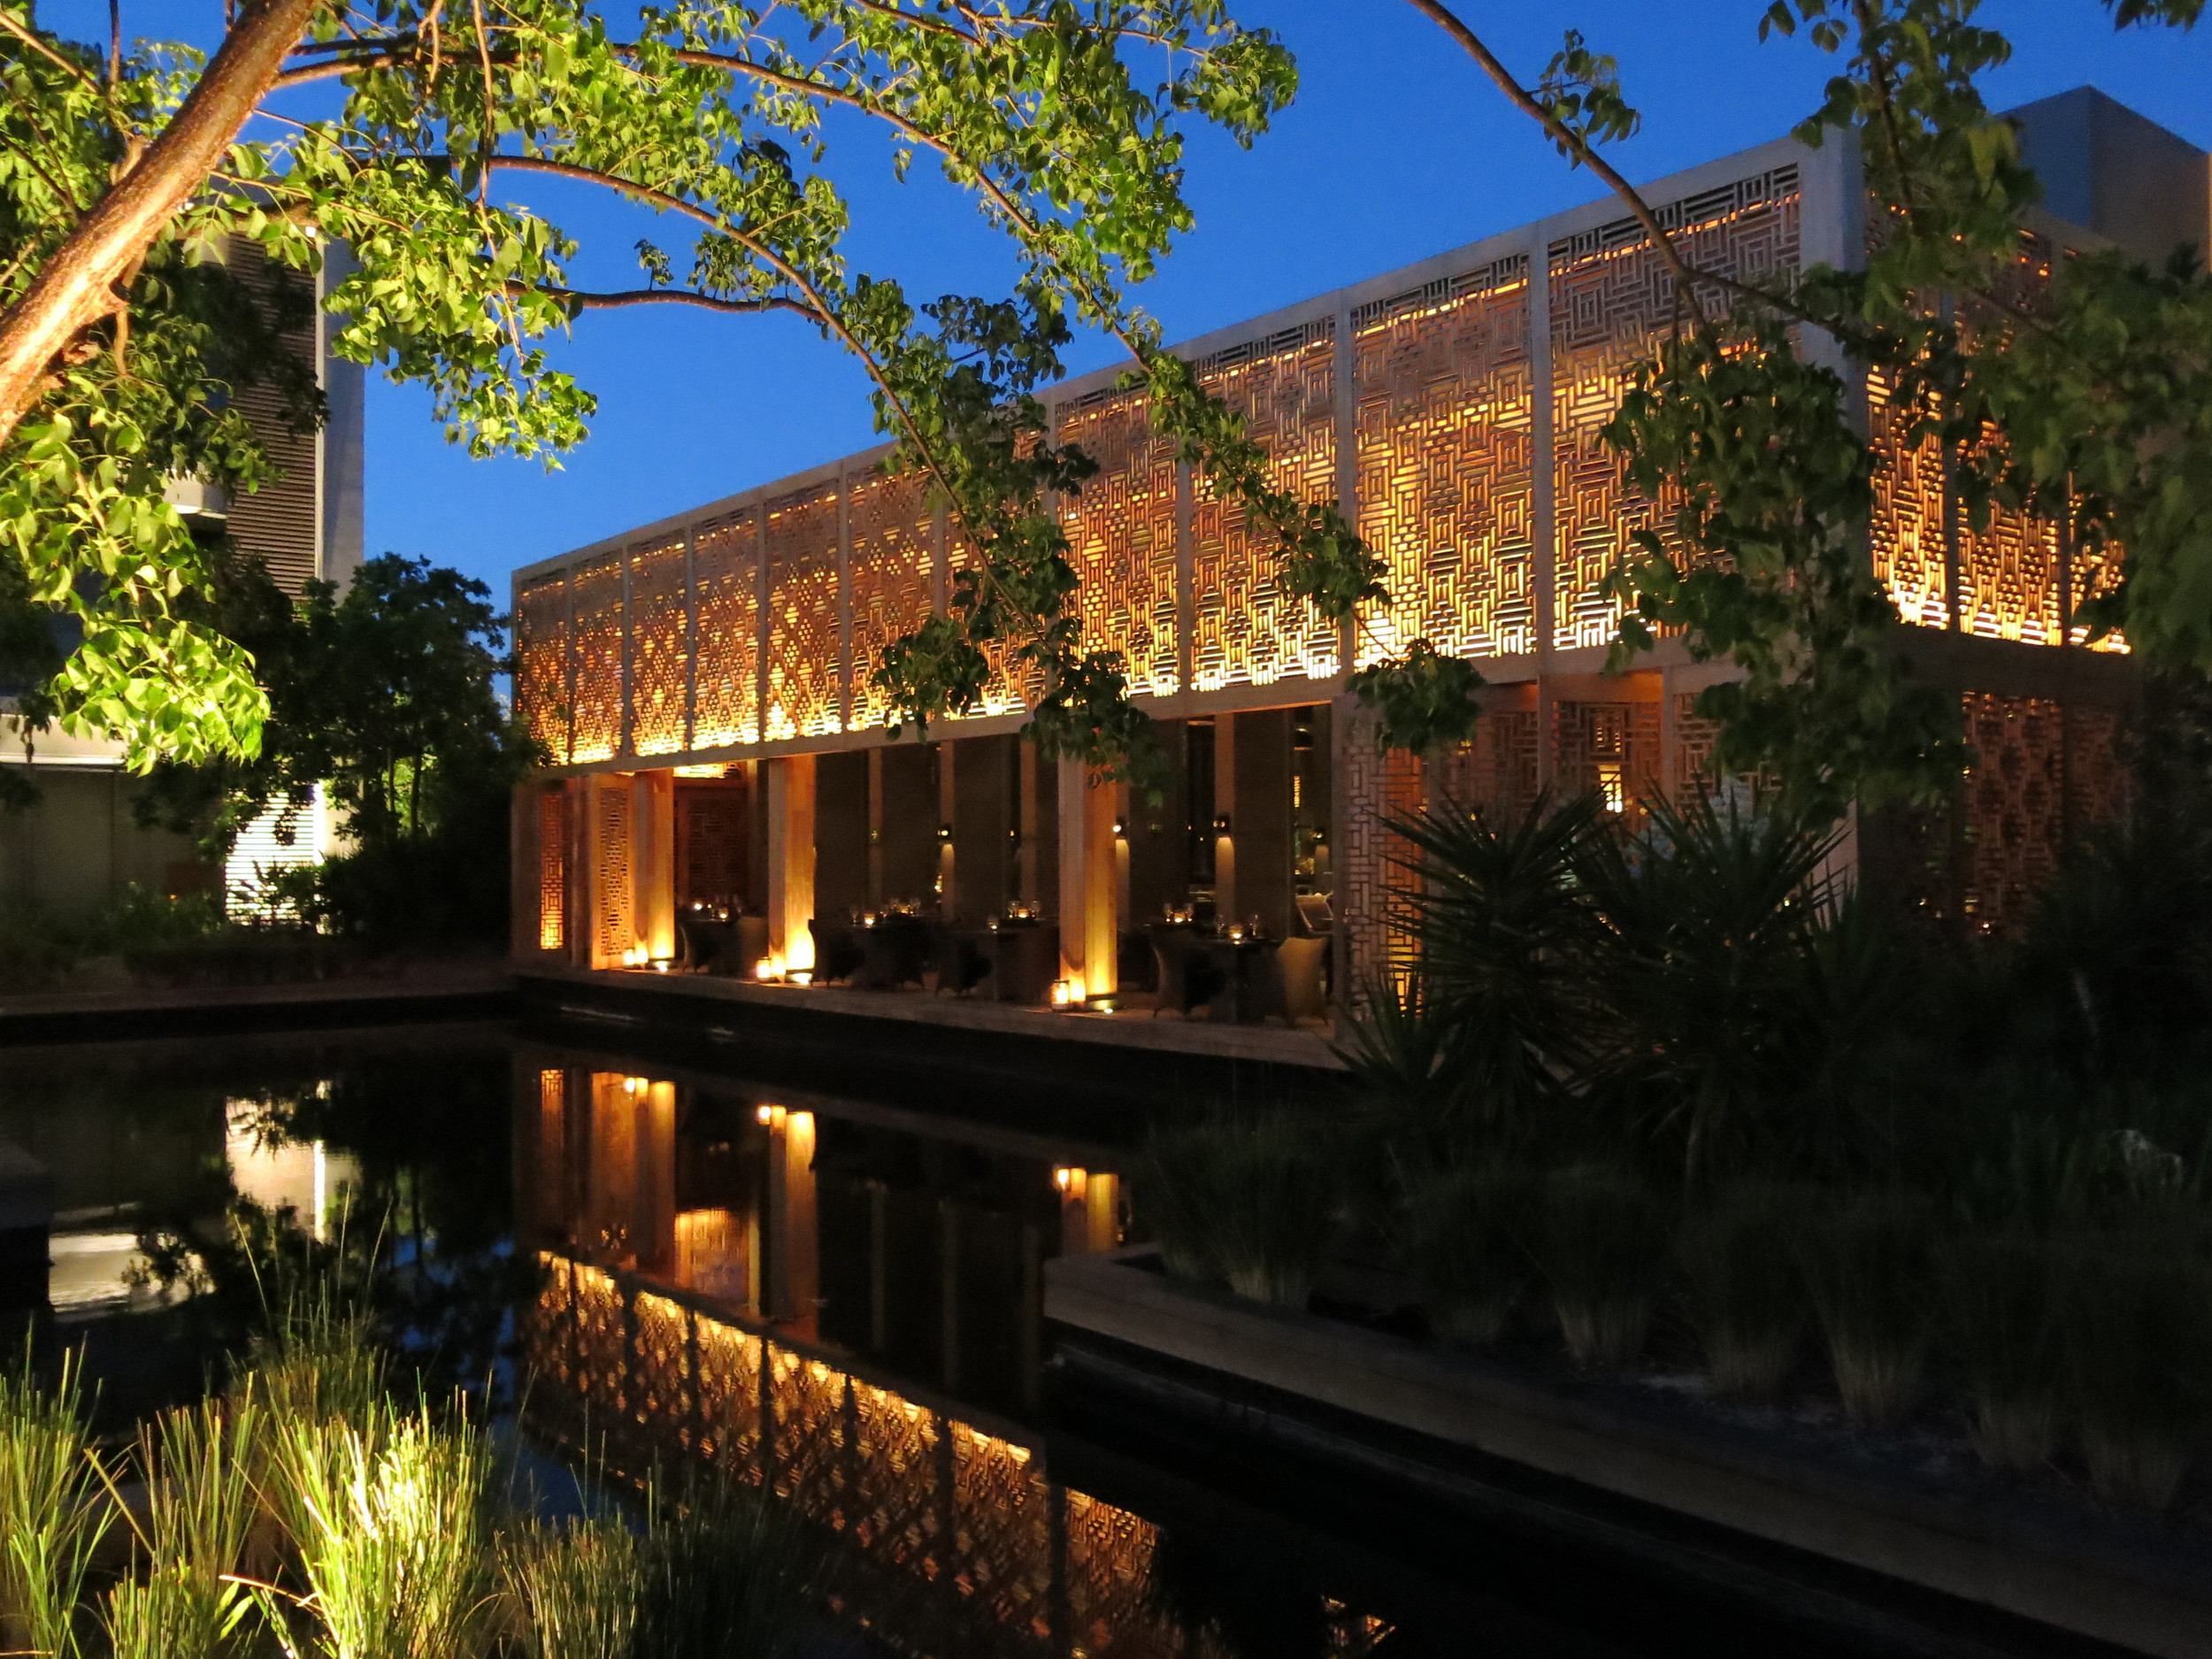 Every evening the resort was illuminated and light played on the reflection pools evoking a sense of calm and tranquility.